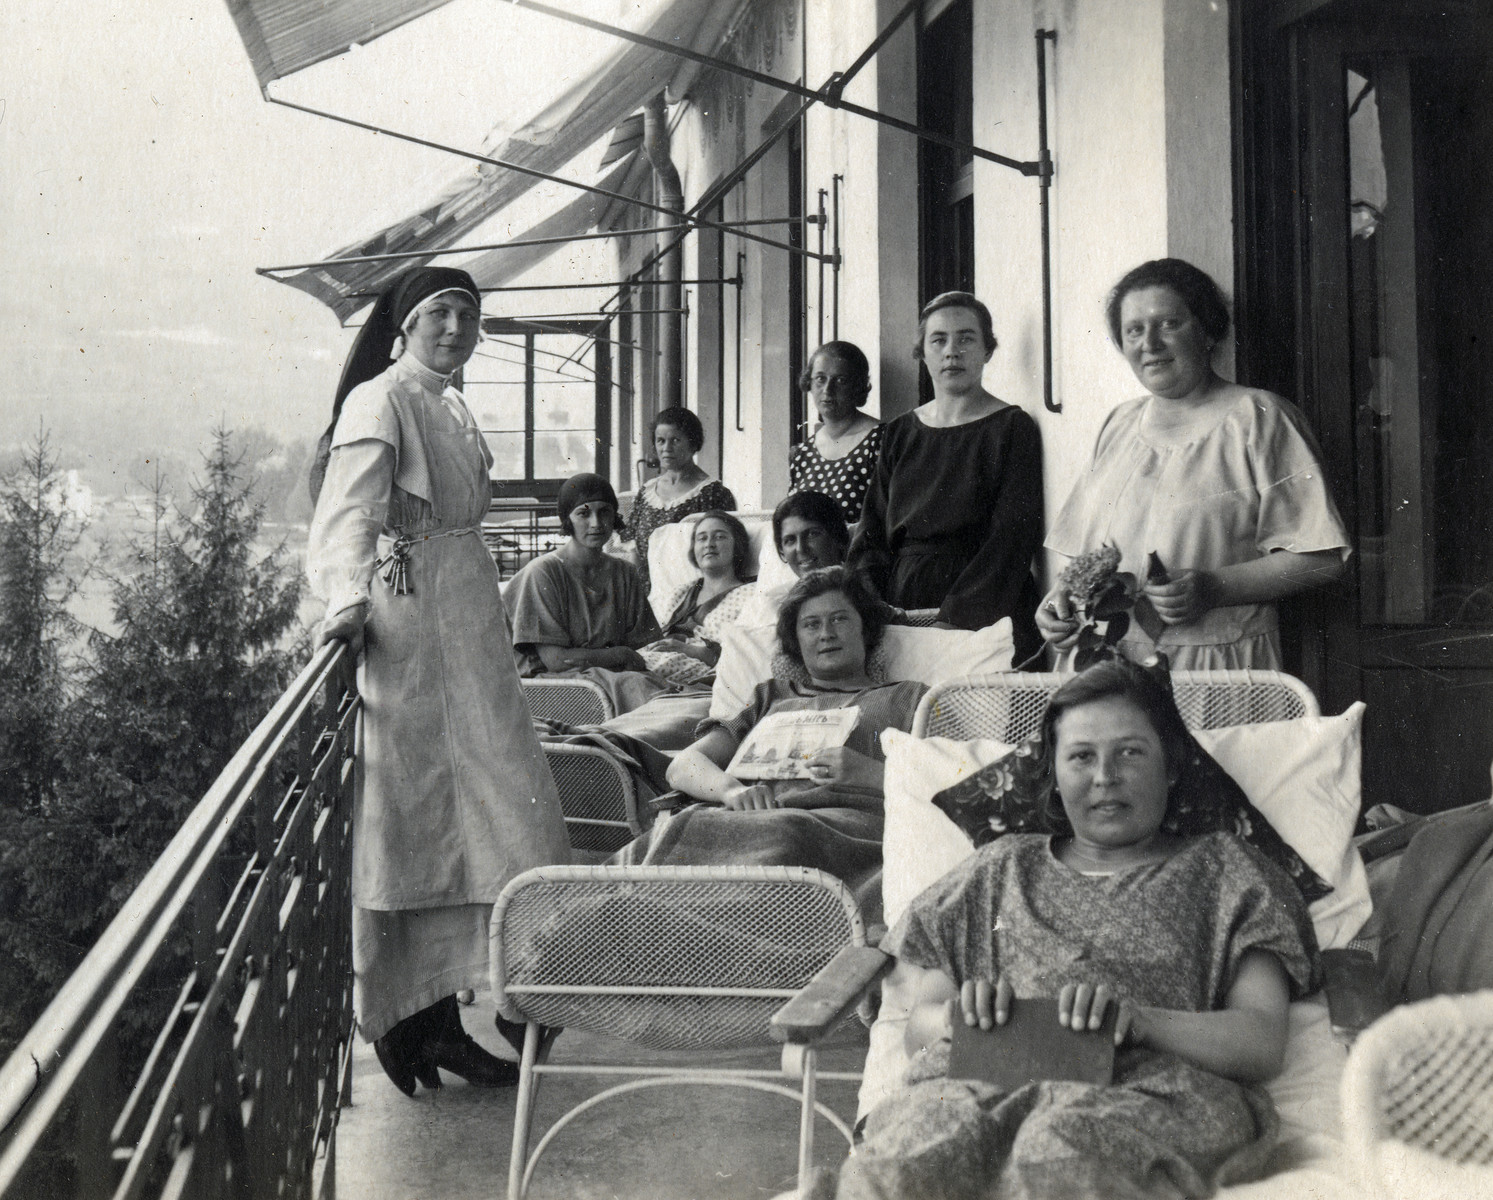 Female patients rest on the terrace of a sanatorium in Merano, Italy